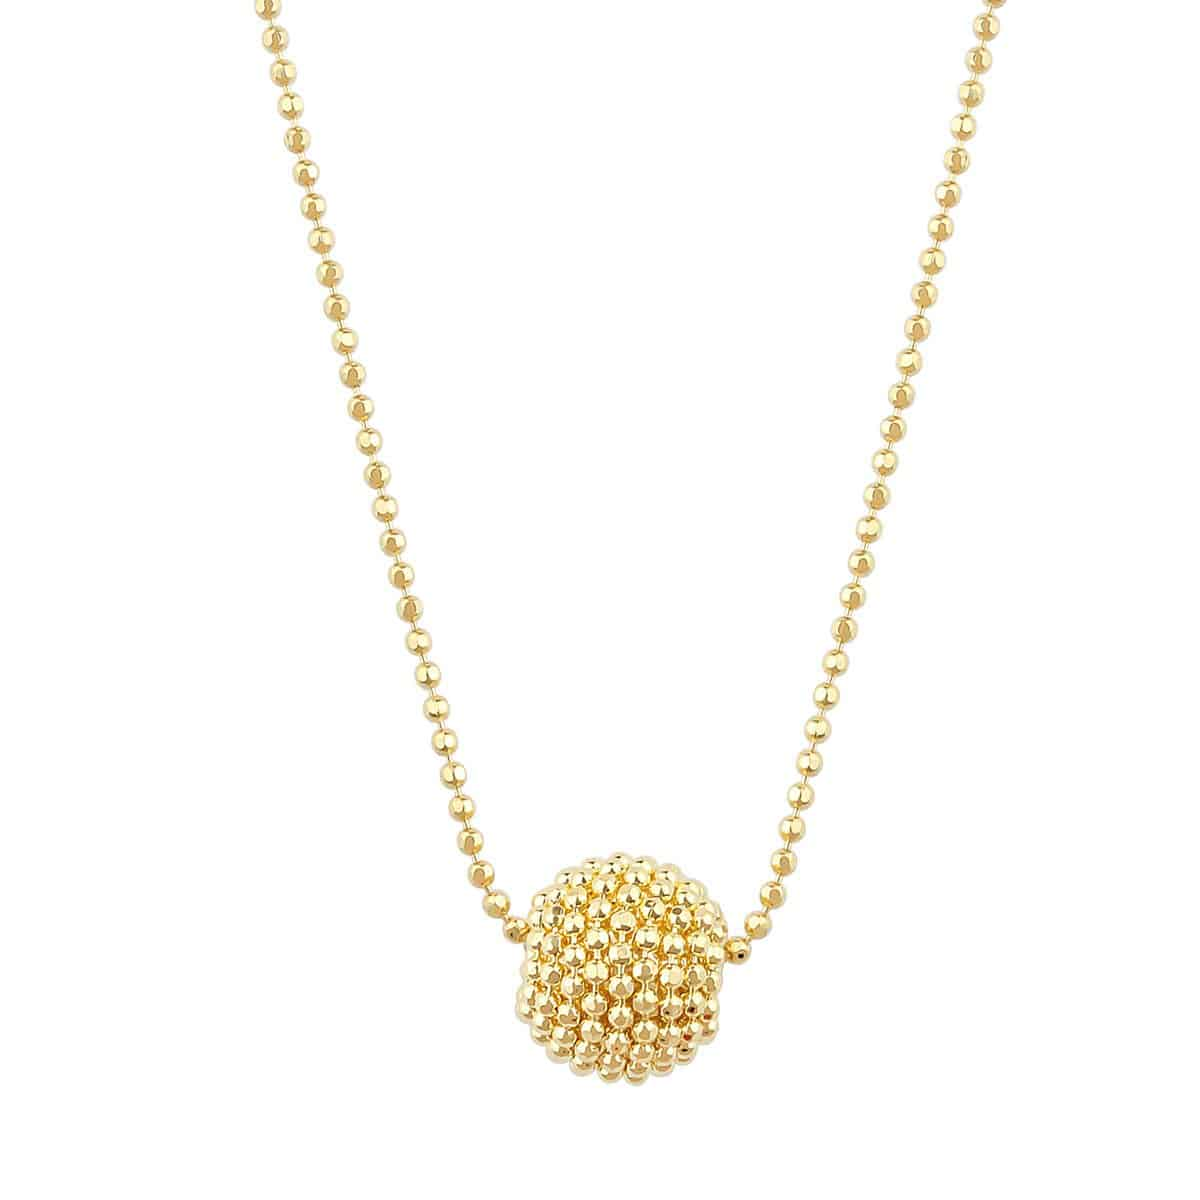 Auric Amelia 18ct Gold Pendant Necklace